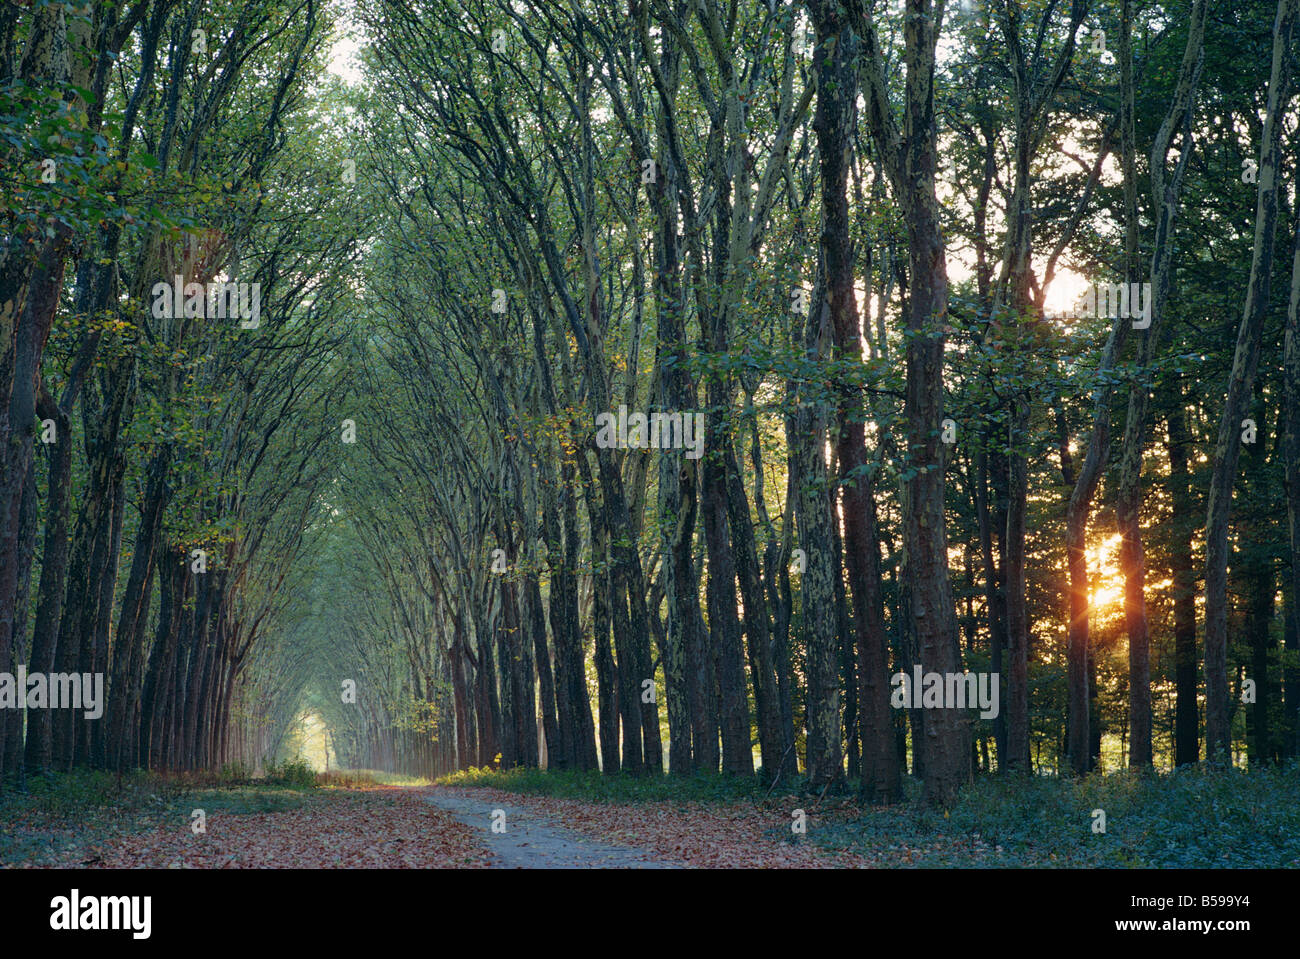 Avenue of trees with sun low in the sky behind, at Versailles, Ile de France, France, Europe - Stock Image